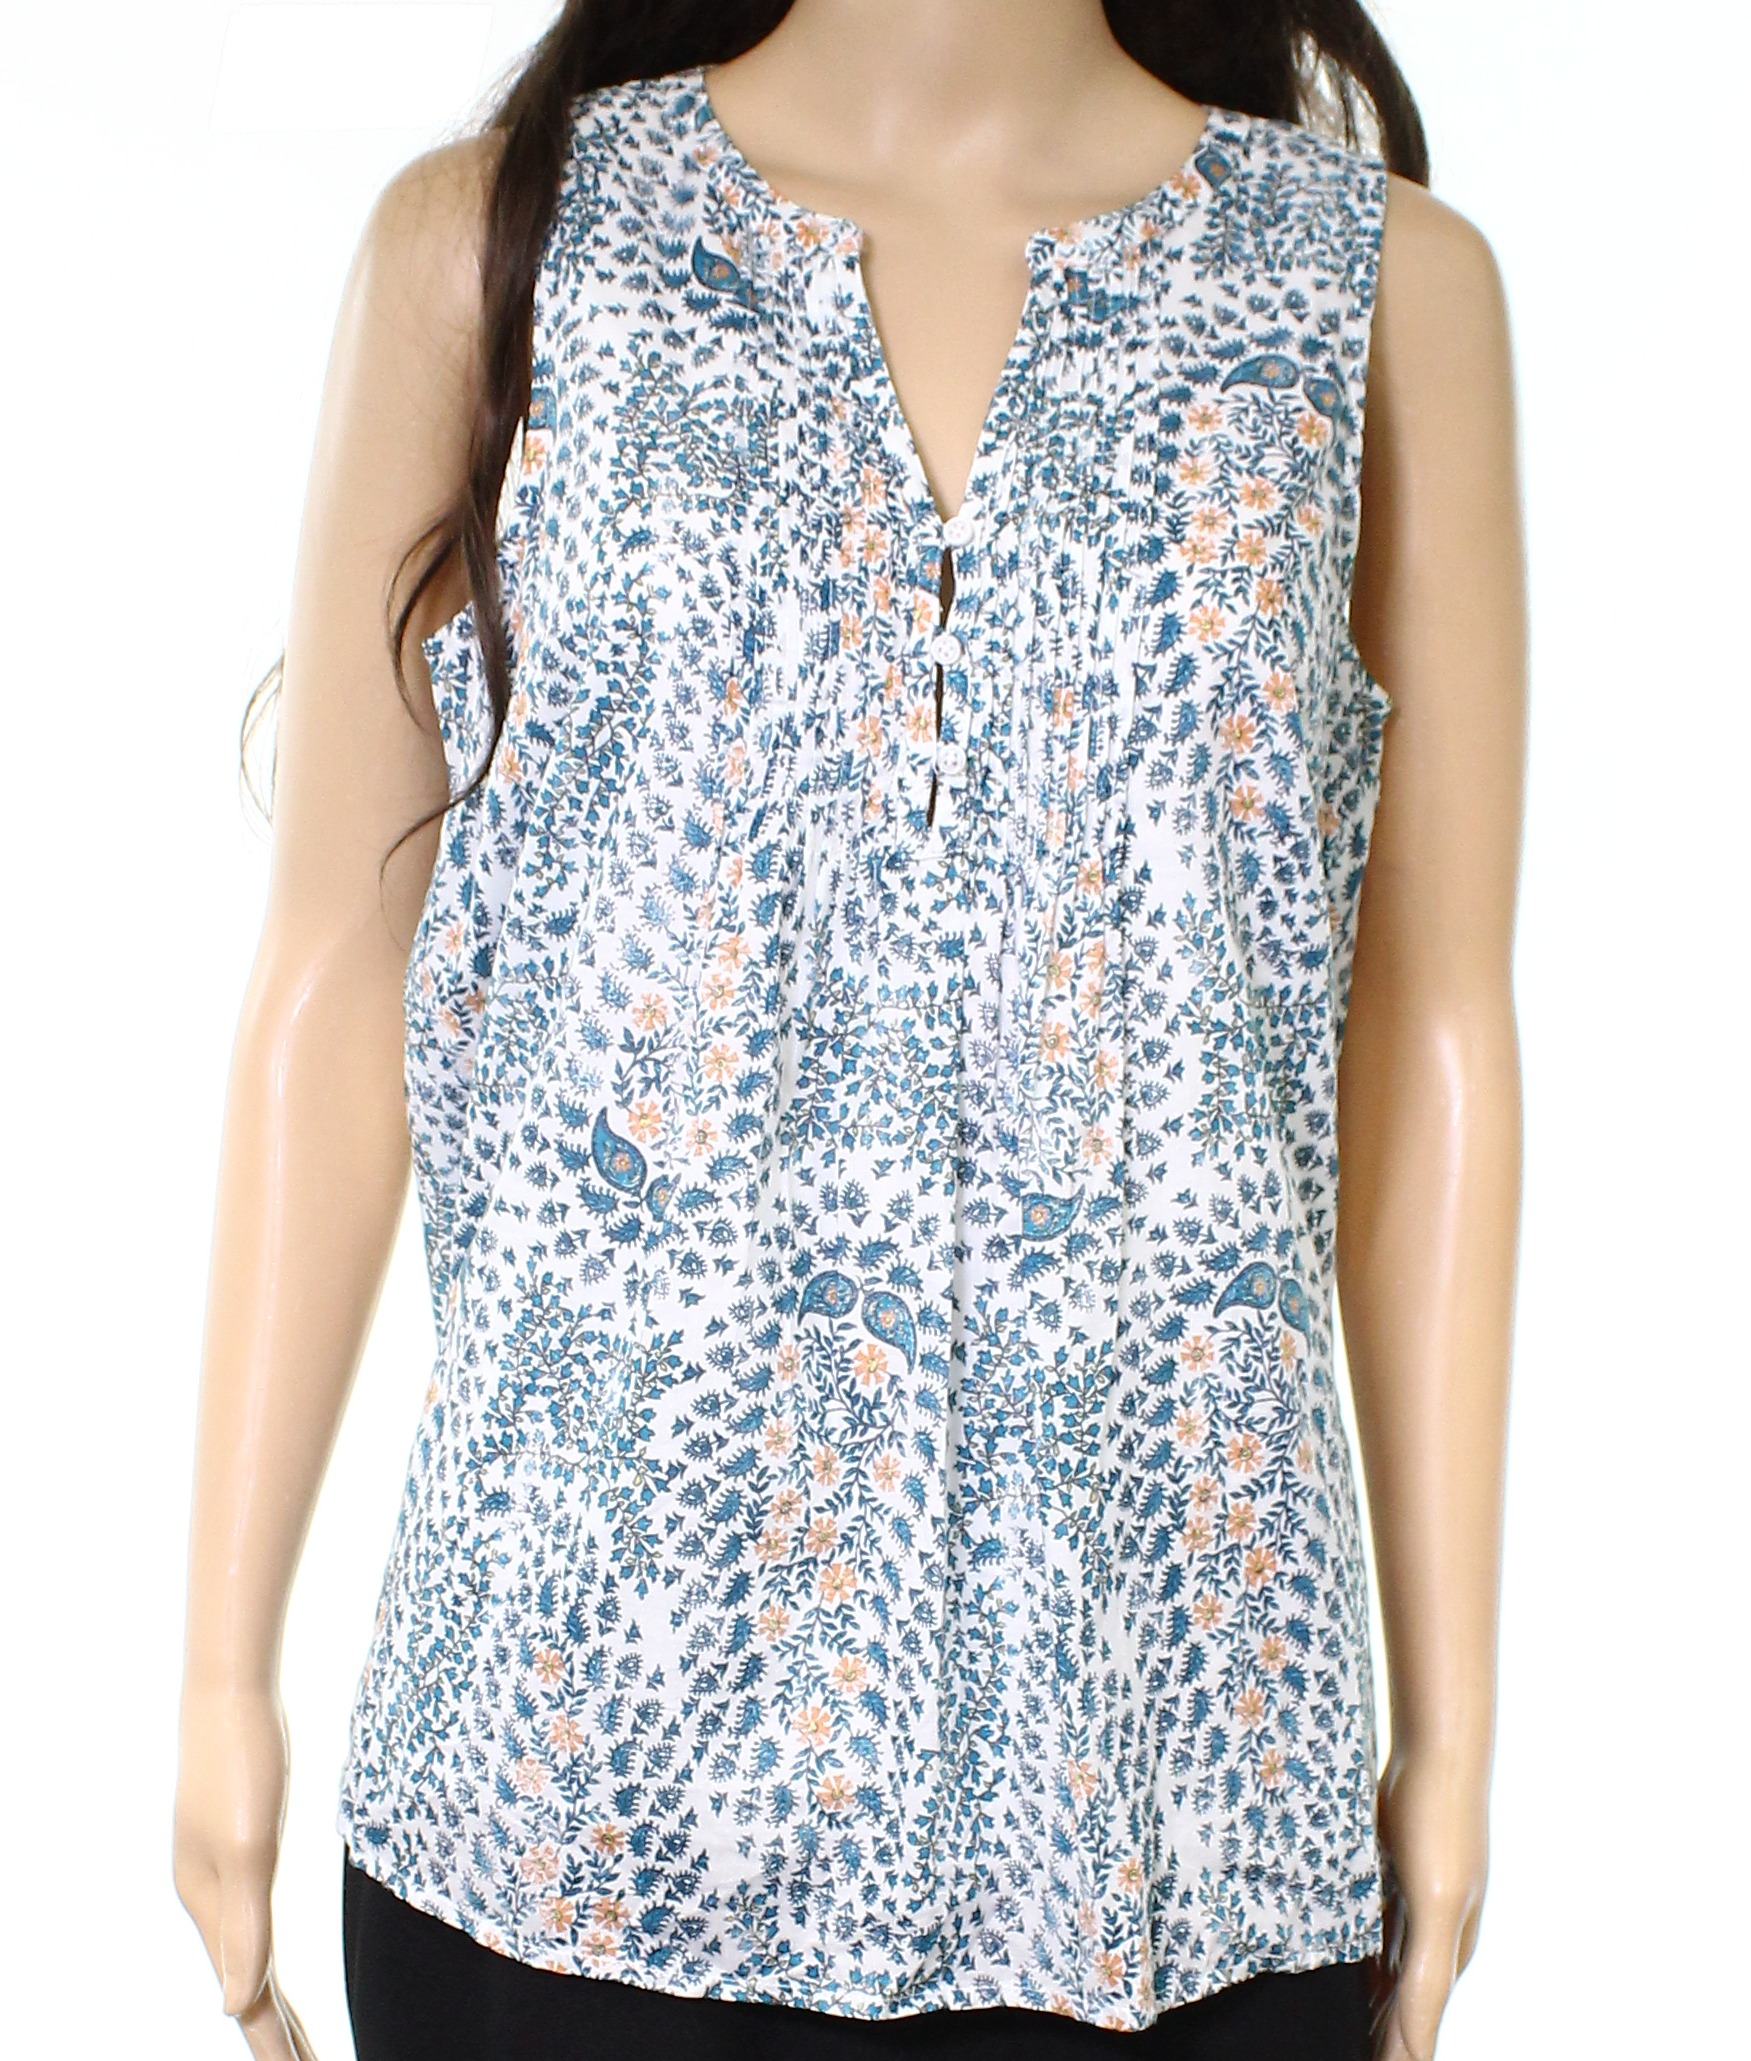 97eee6d860 We have more Caslon in Size PS - Click Here Click to see all Womens Tops &  Blouses in Size PS